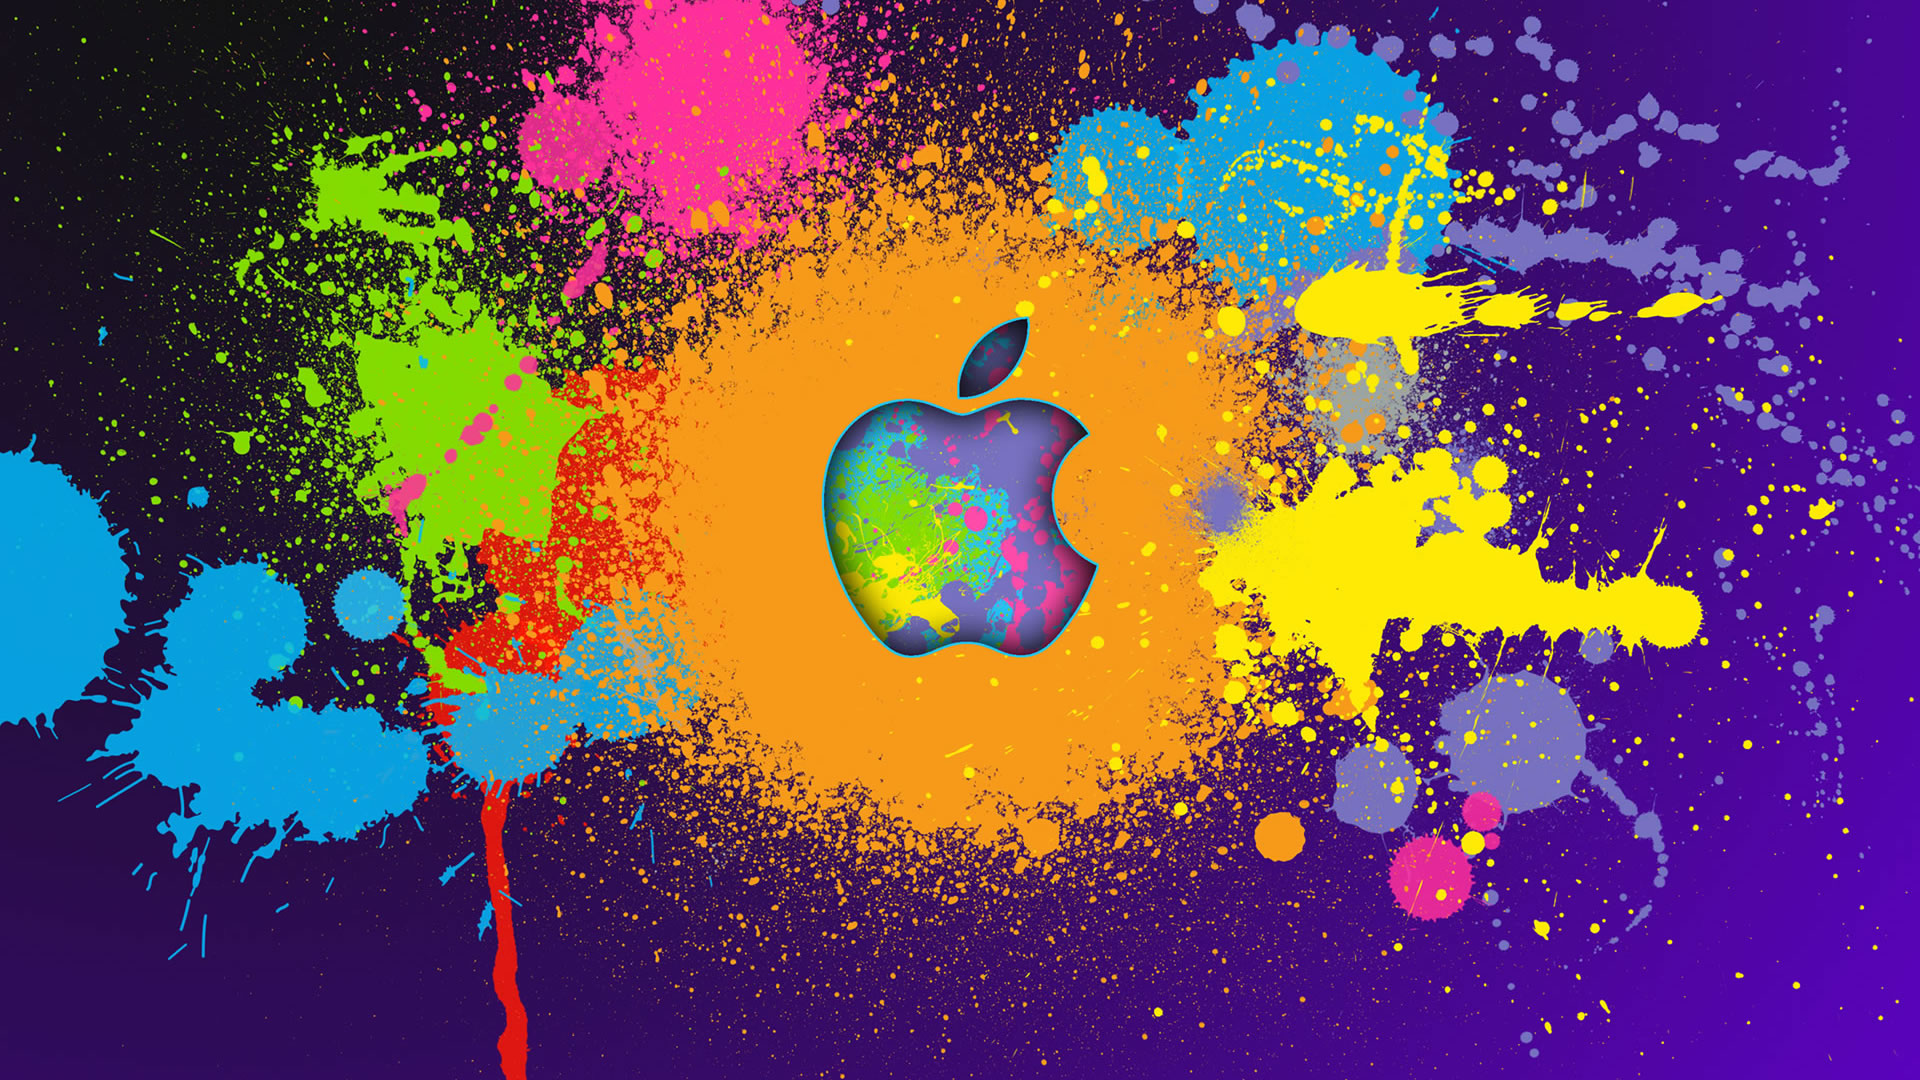 Amazing Paint Apple Wallpaper